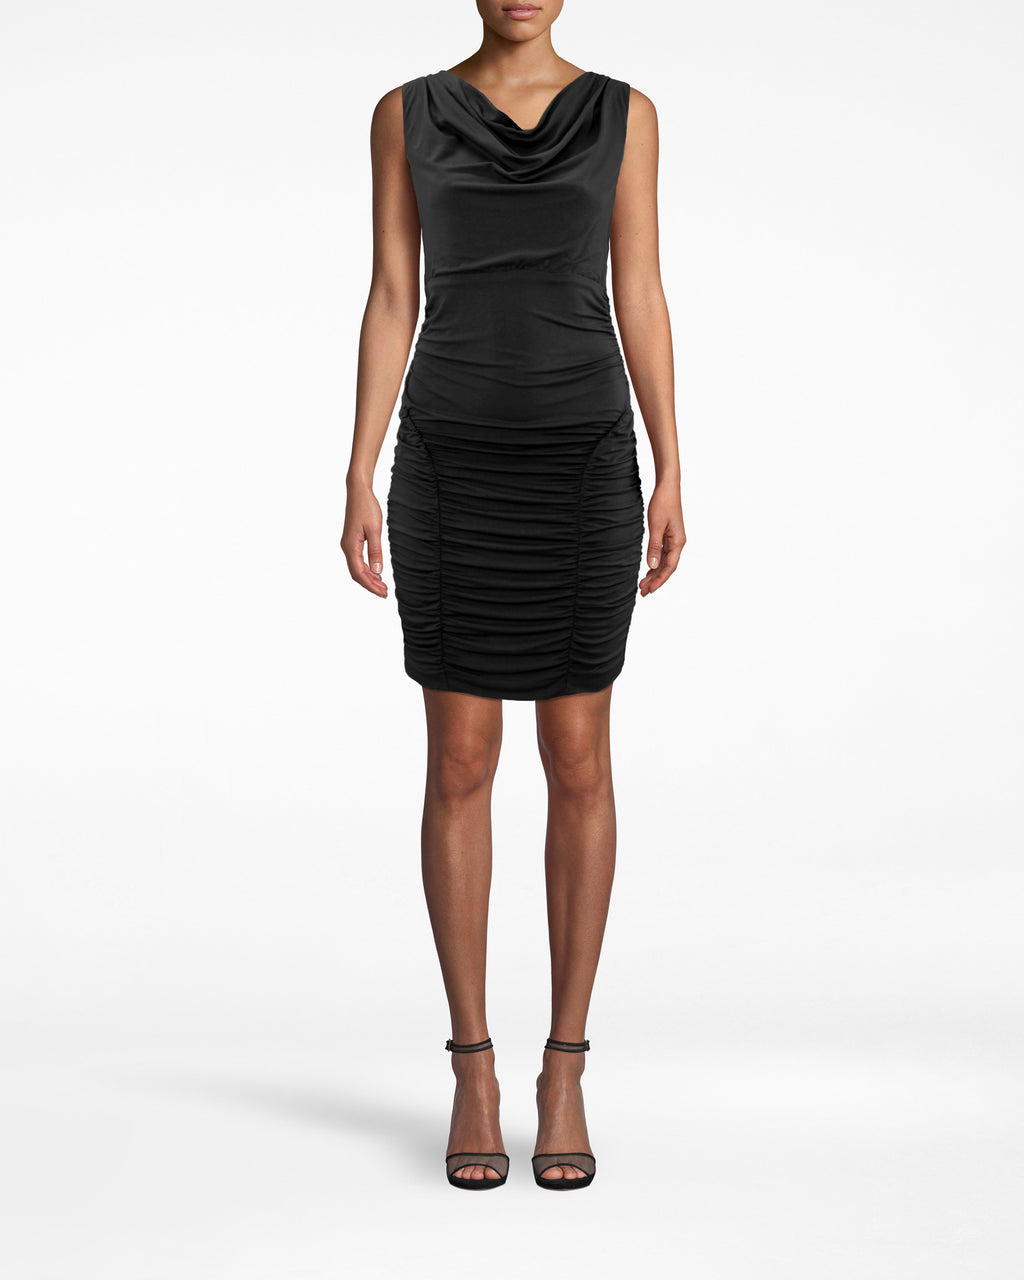 BD20068 - JERSEY RUCHED DRESS - dresses - short - Intricate fabric gathers (from the waist down) drape your body in this sleeveless dress. The neckline bunches, then loosely falls. Twin lining on the upper inner thigh gives your hips amazing shape. Pair back with strappy heels and a clutch. Exposed back zipper for closure.